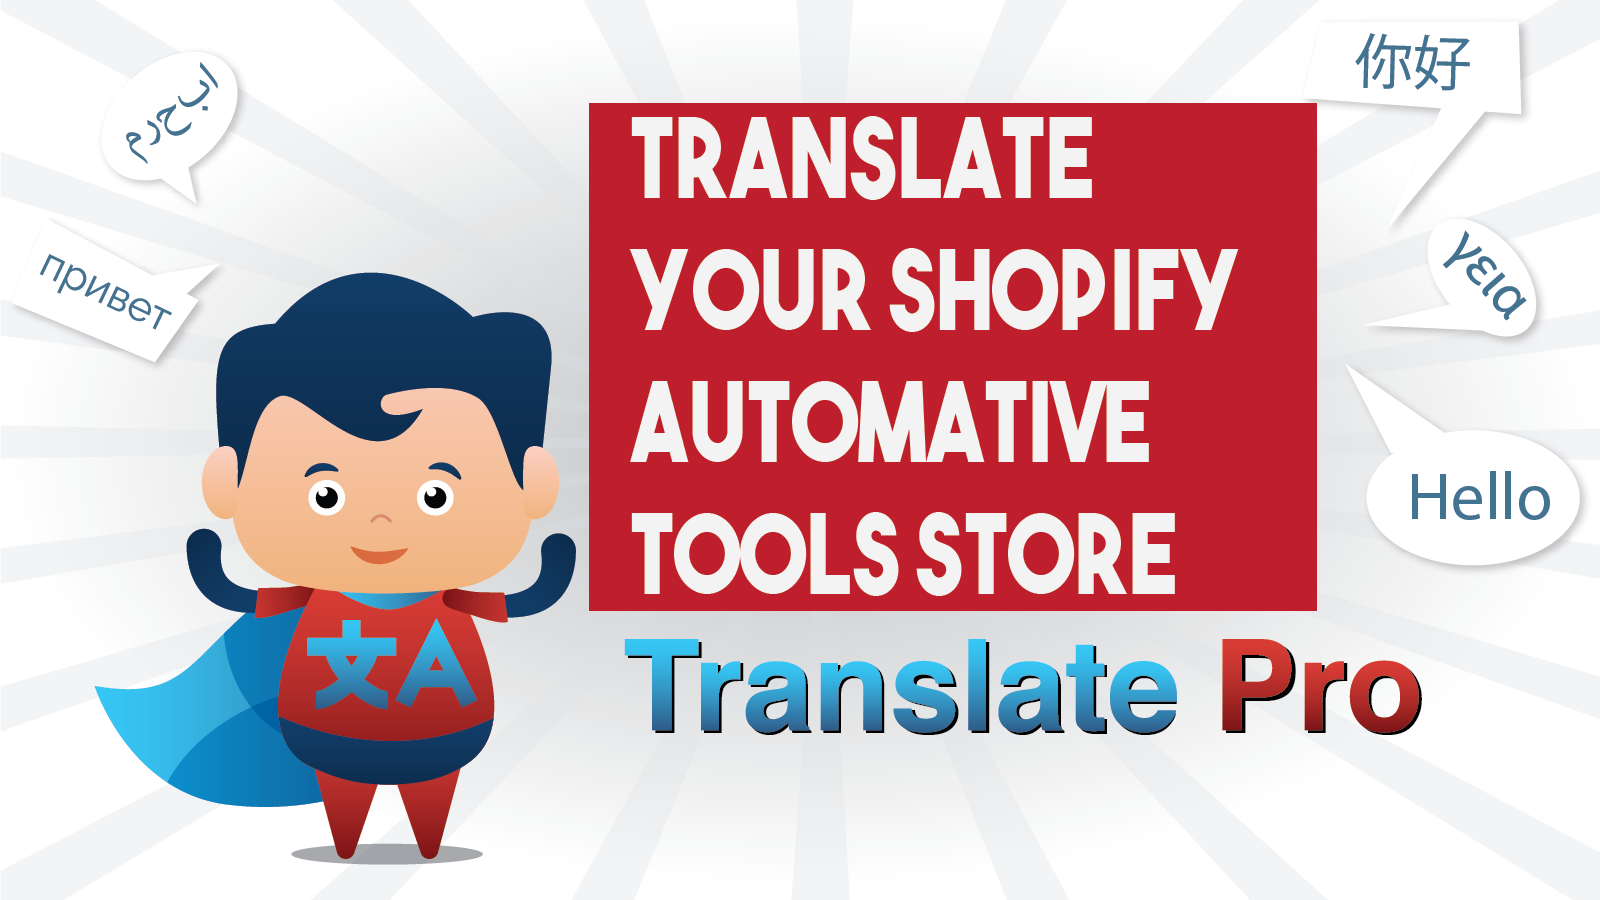 How To Translate Your Shopify Automative Tools Store